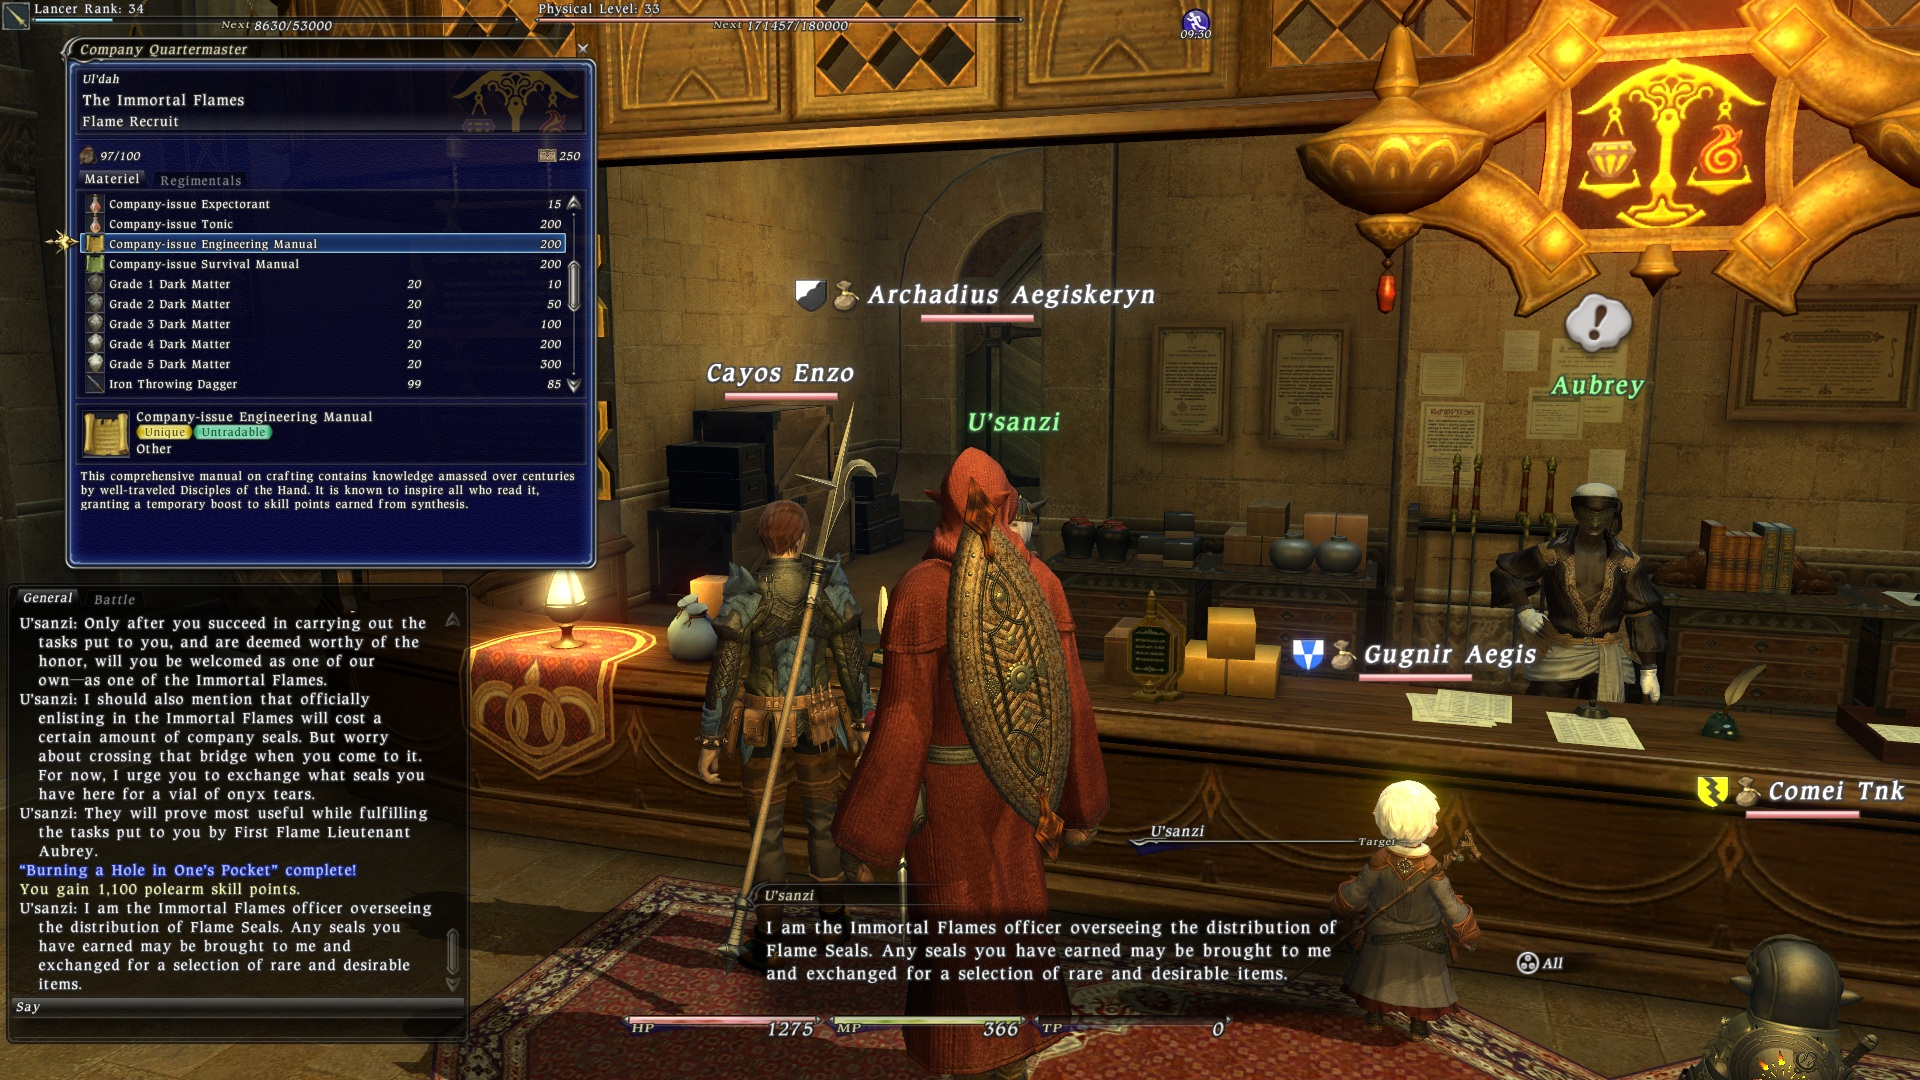 cayos ffxiv zoning timers sync rank reward higher list rewards quests switch browser fine stuff killing found seconds tested noscea teleported finding npcs talking crappy 07212011 notes 118 side made patch guide timer issue ranks quest imagine